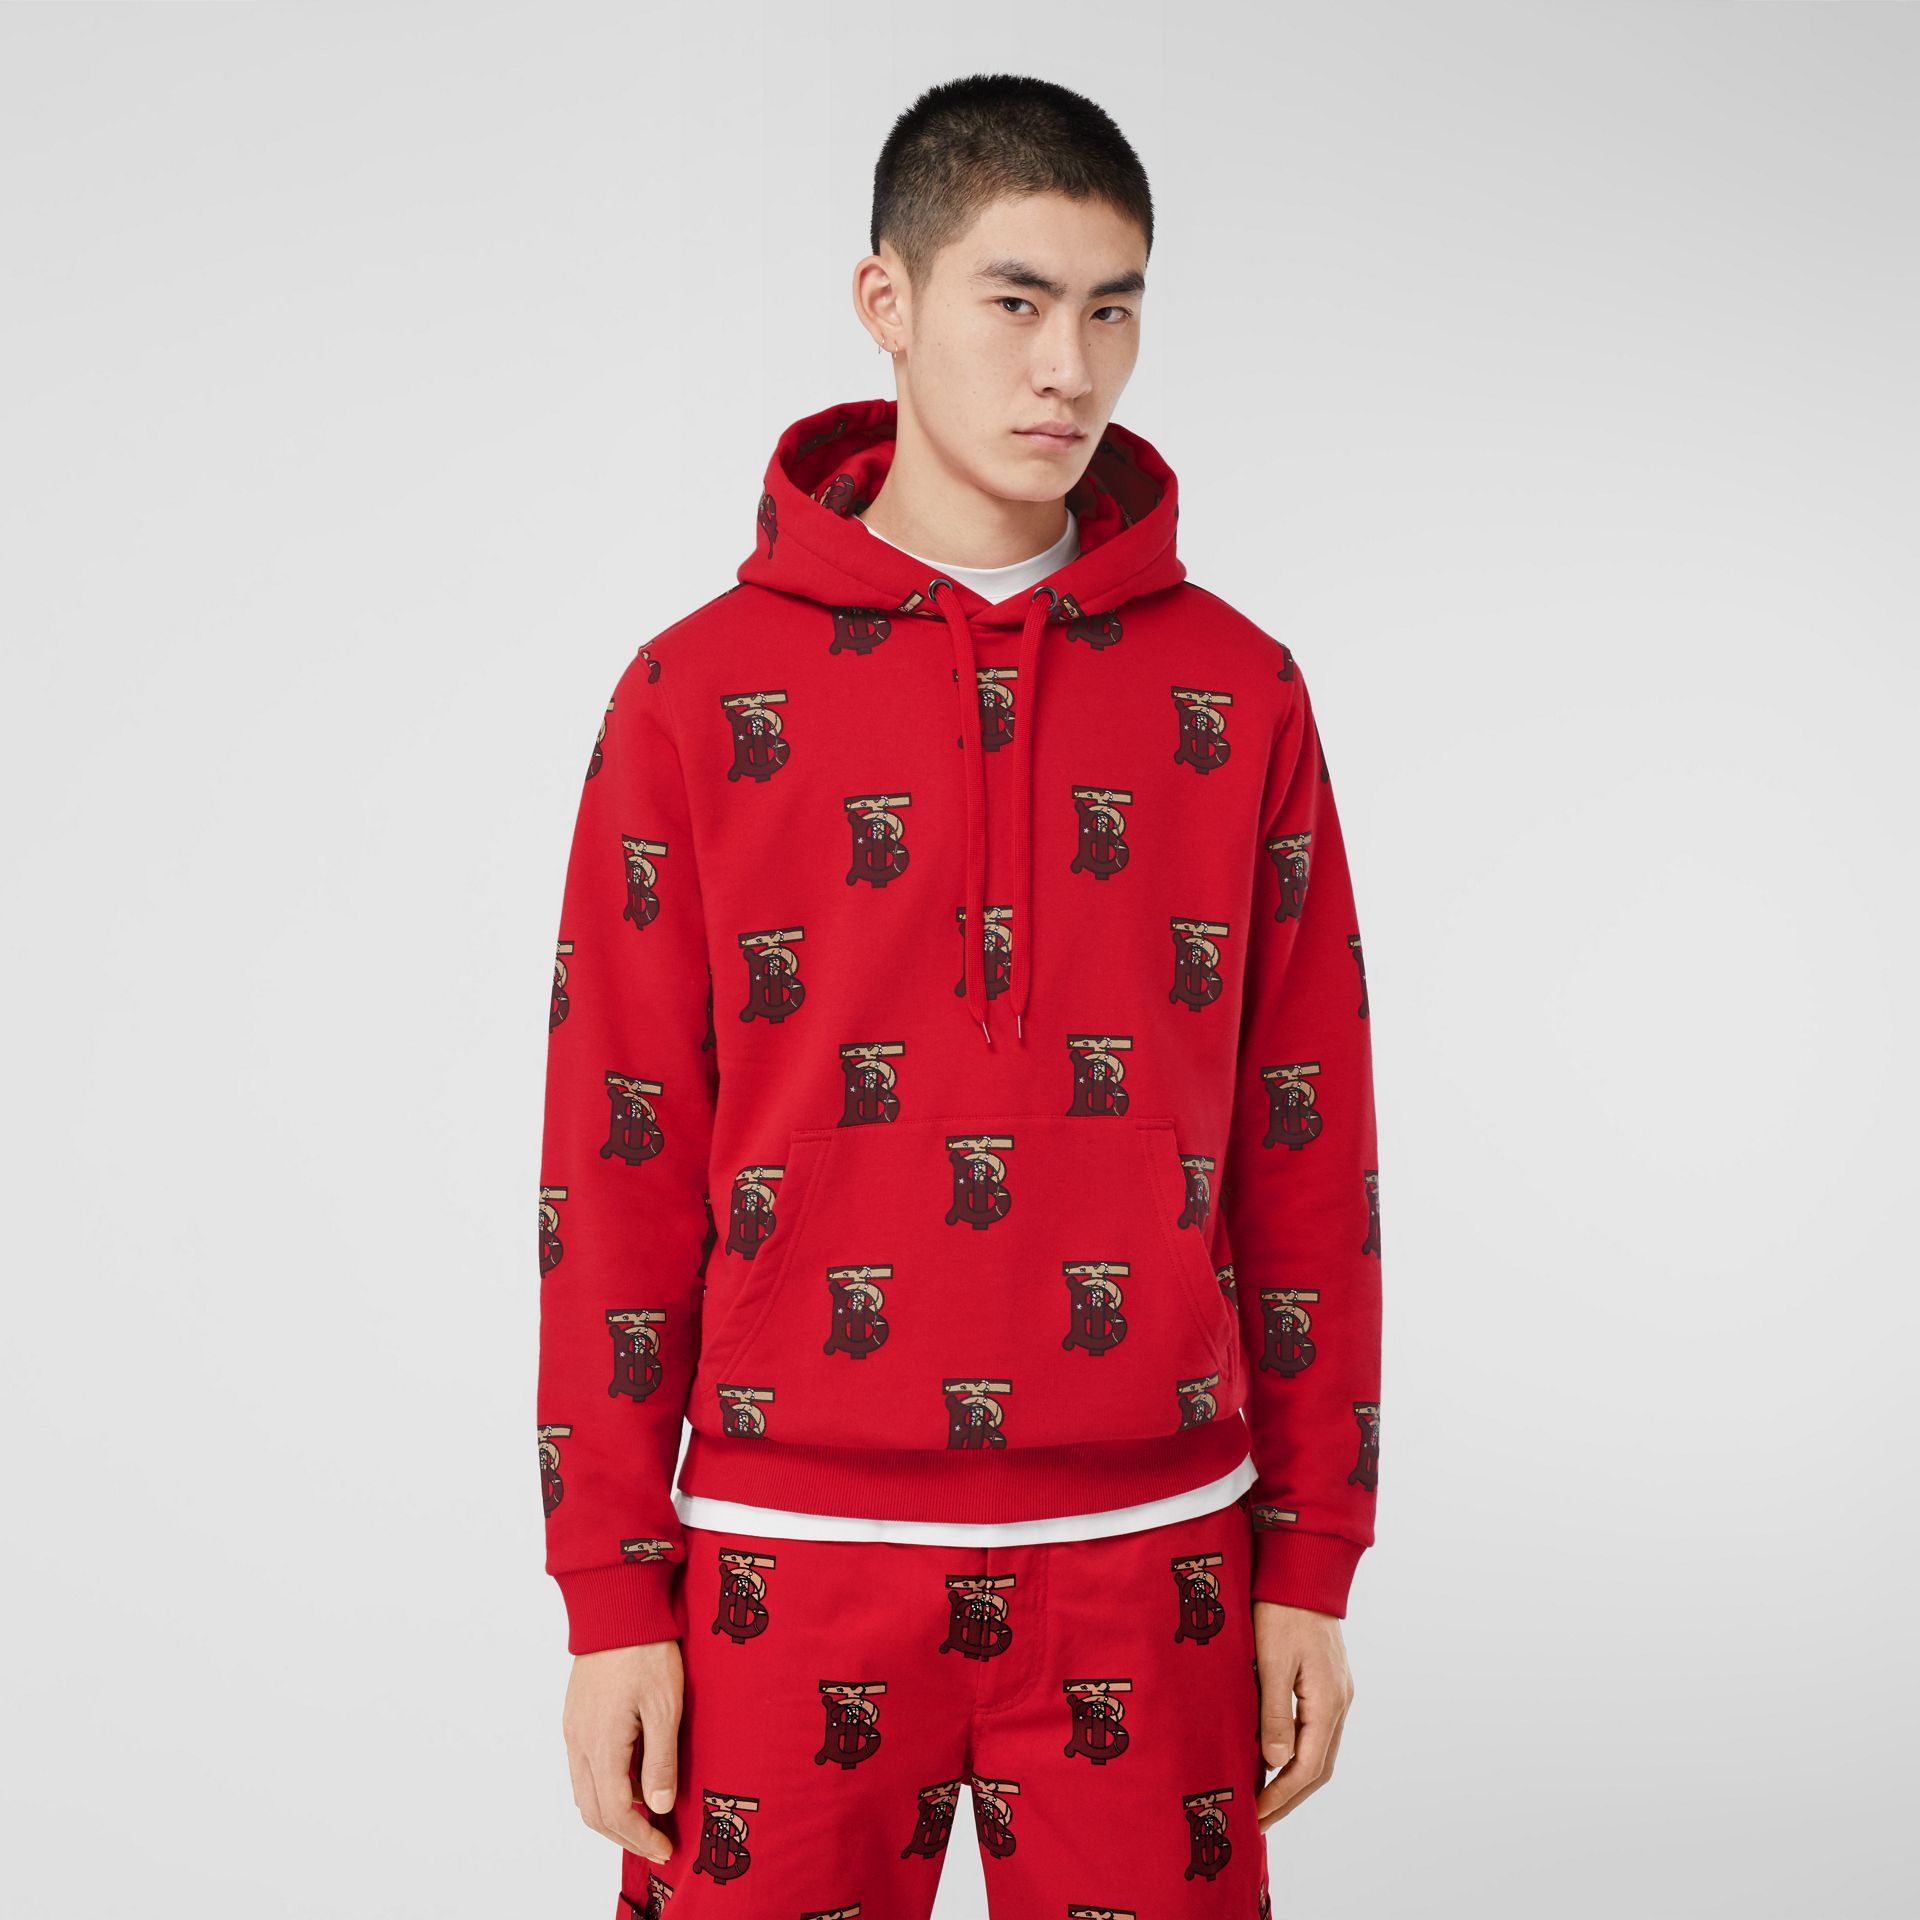 Monogram Motif Cotton Oversized Hoodie in Bright Red - Men | Burberry - gallery image 4